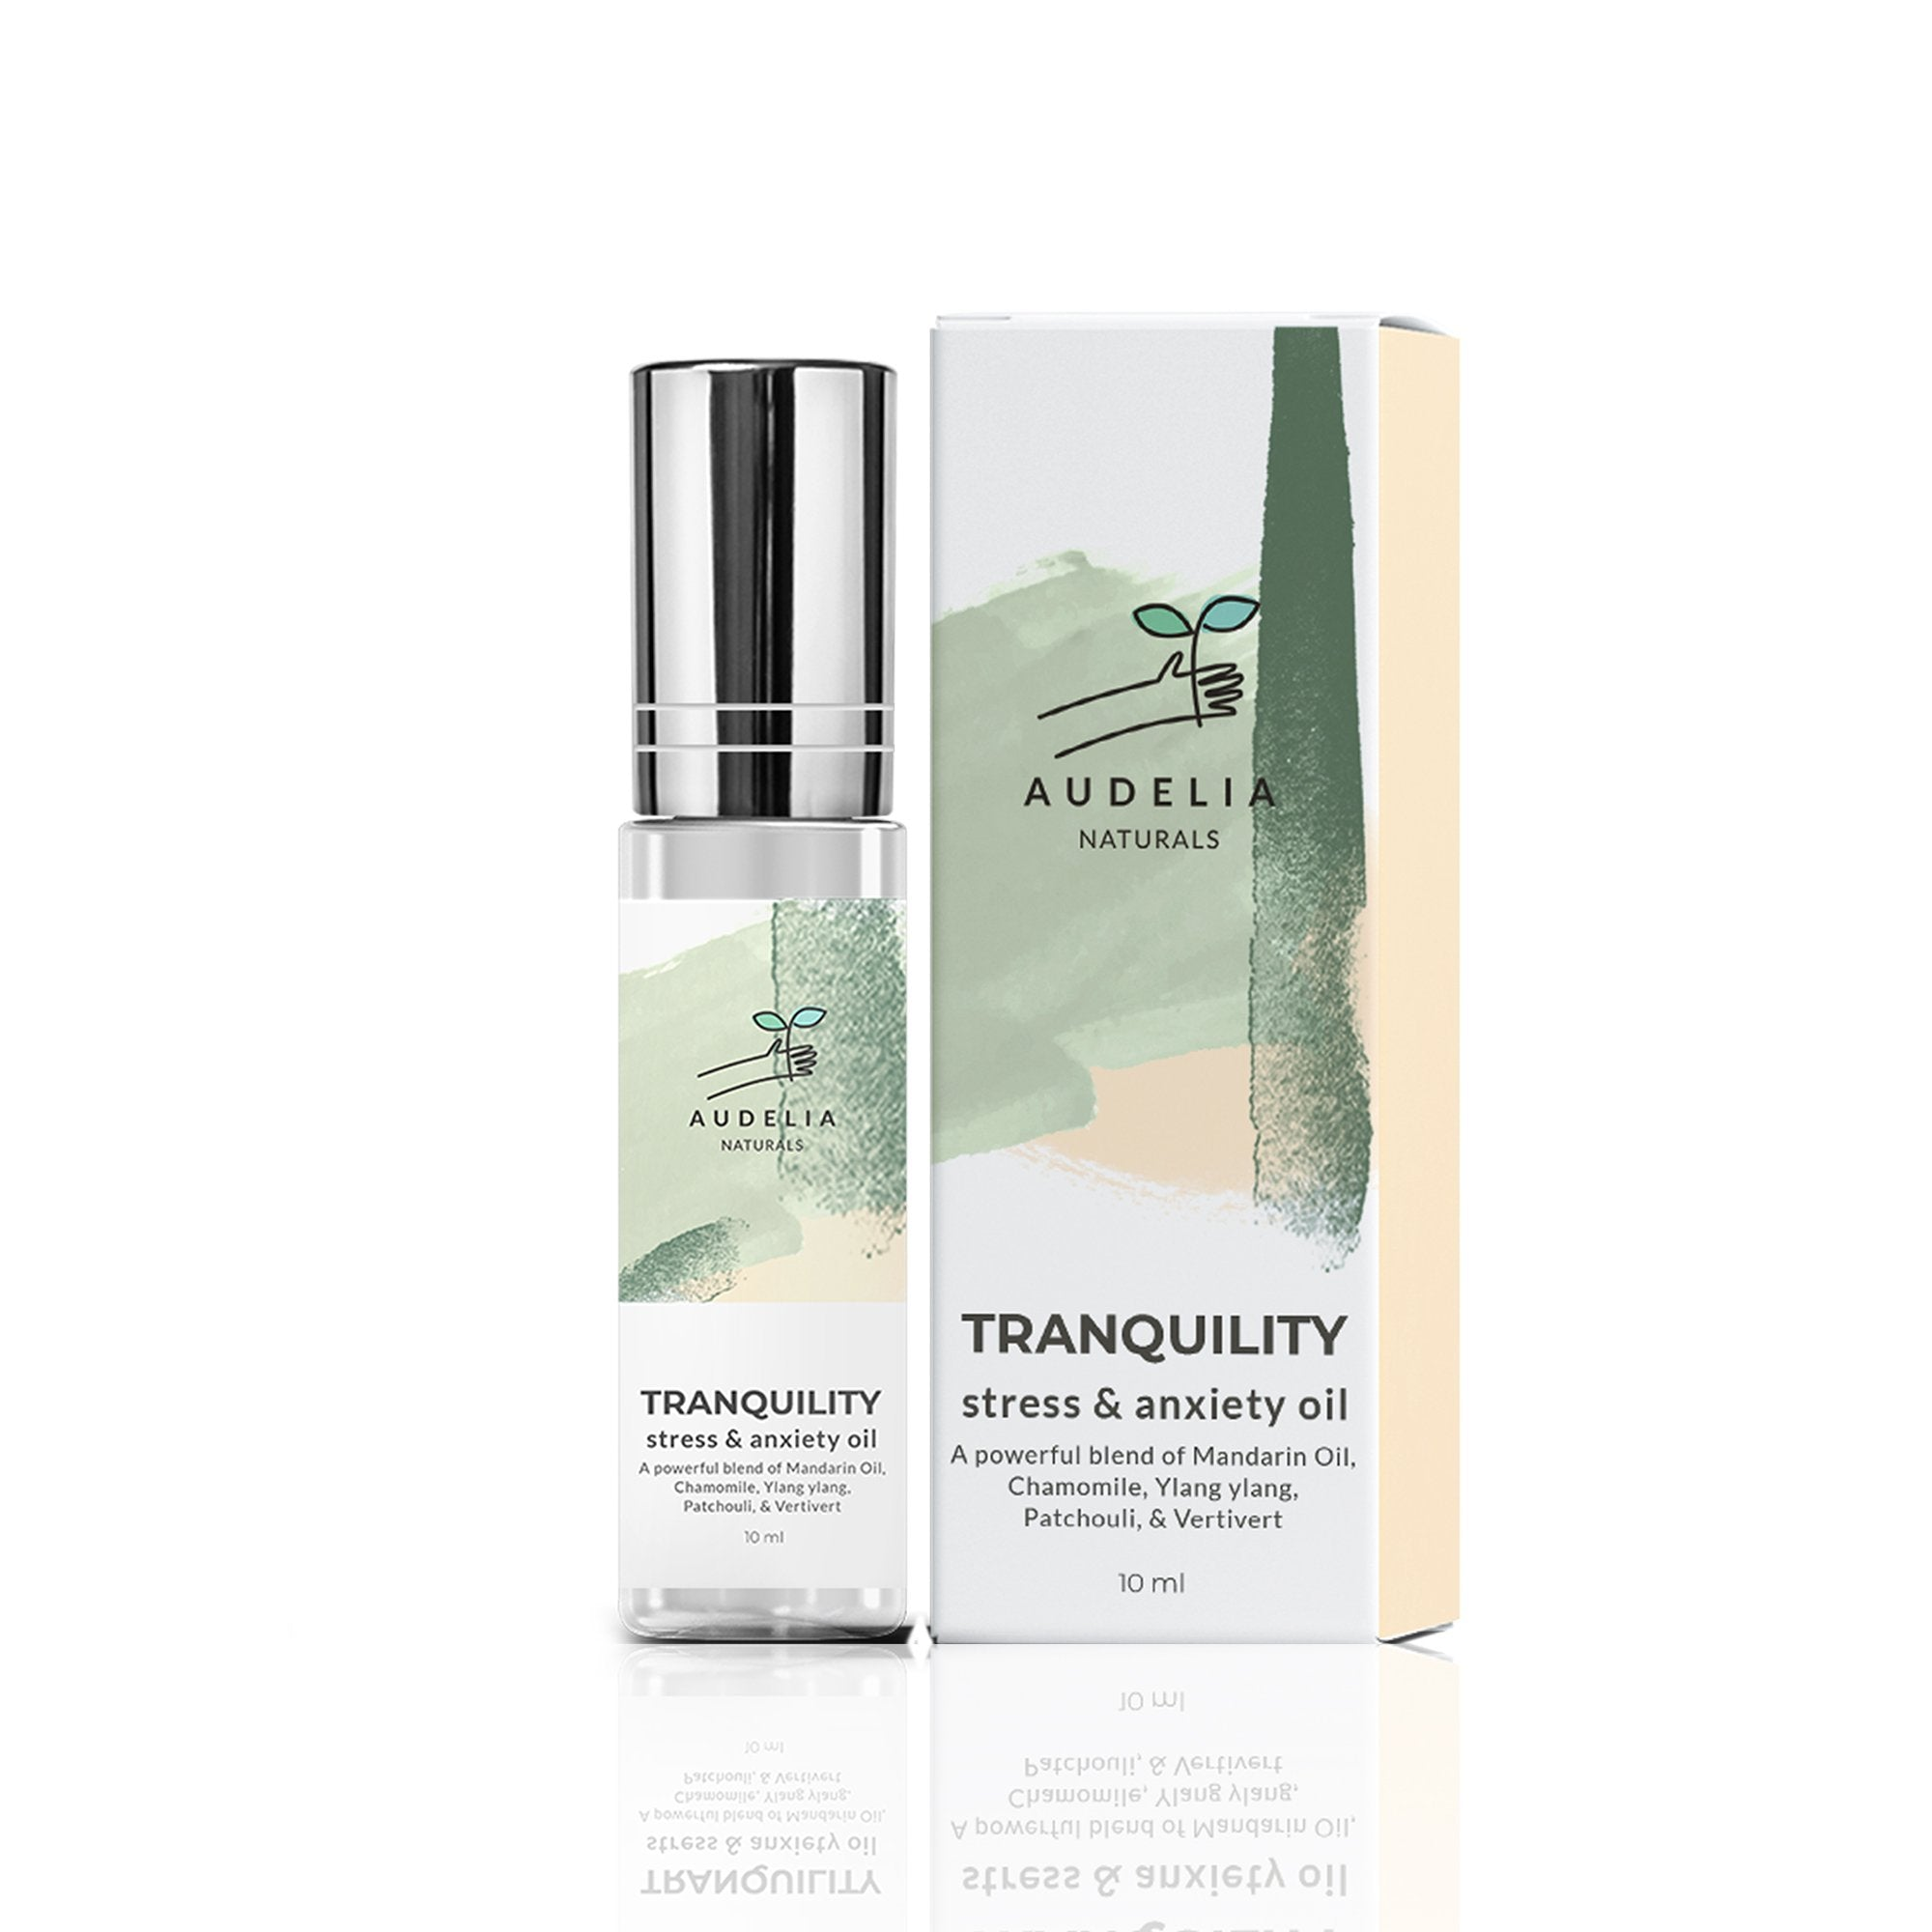 Audelia Tranquility Oil